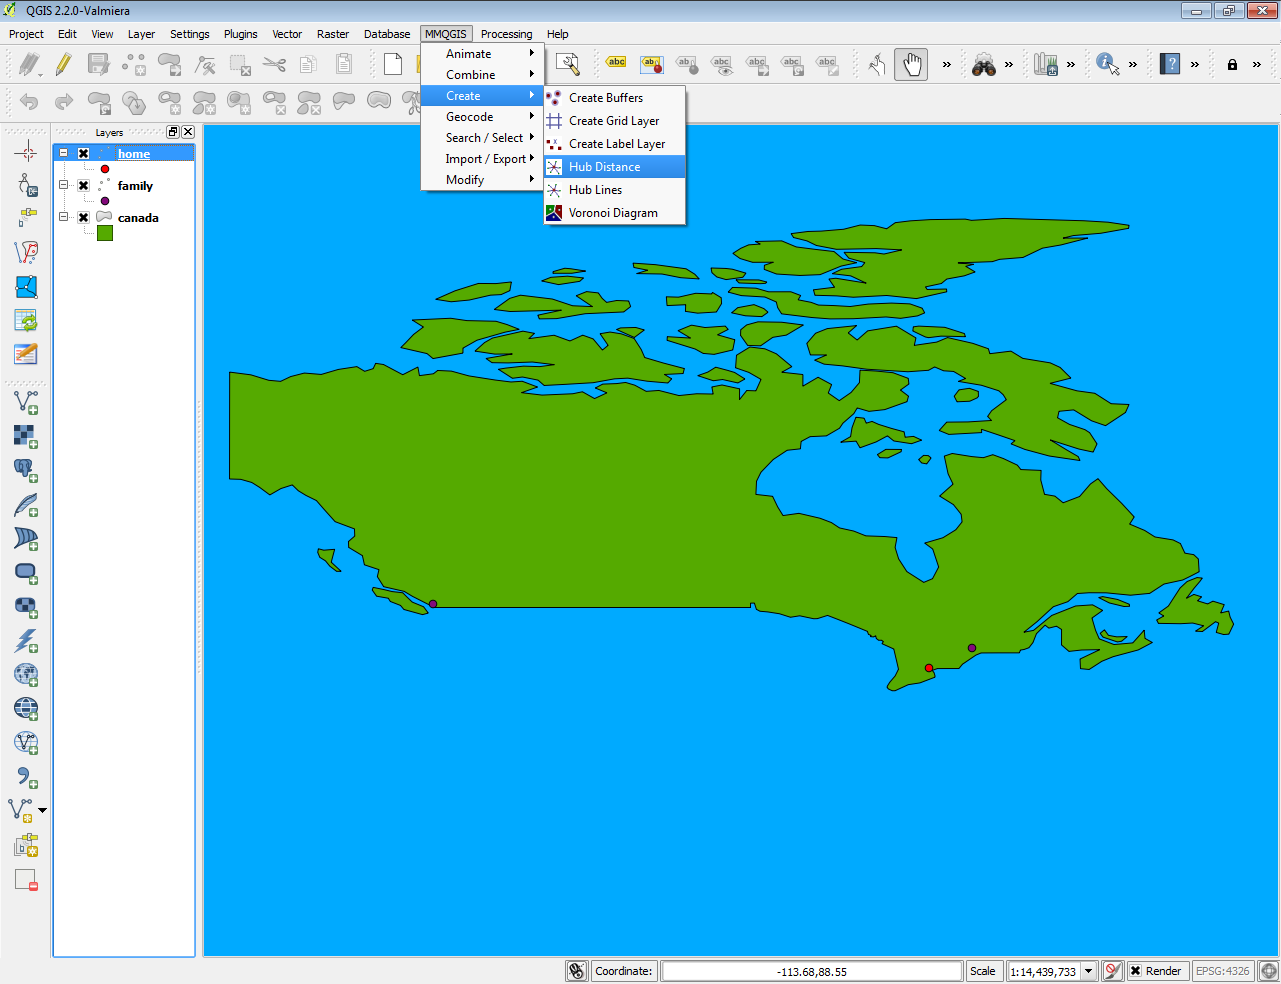 QGIS Tutorial: How to find the distance from multiple points